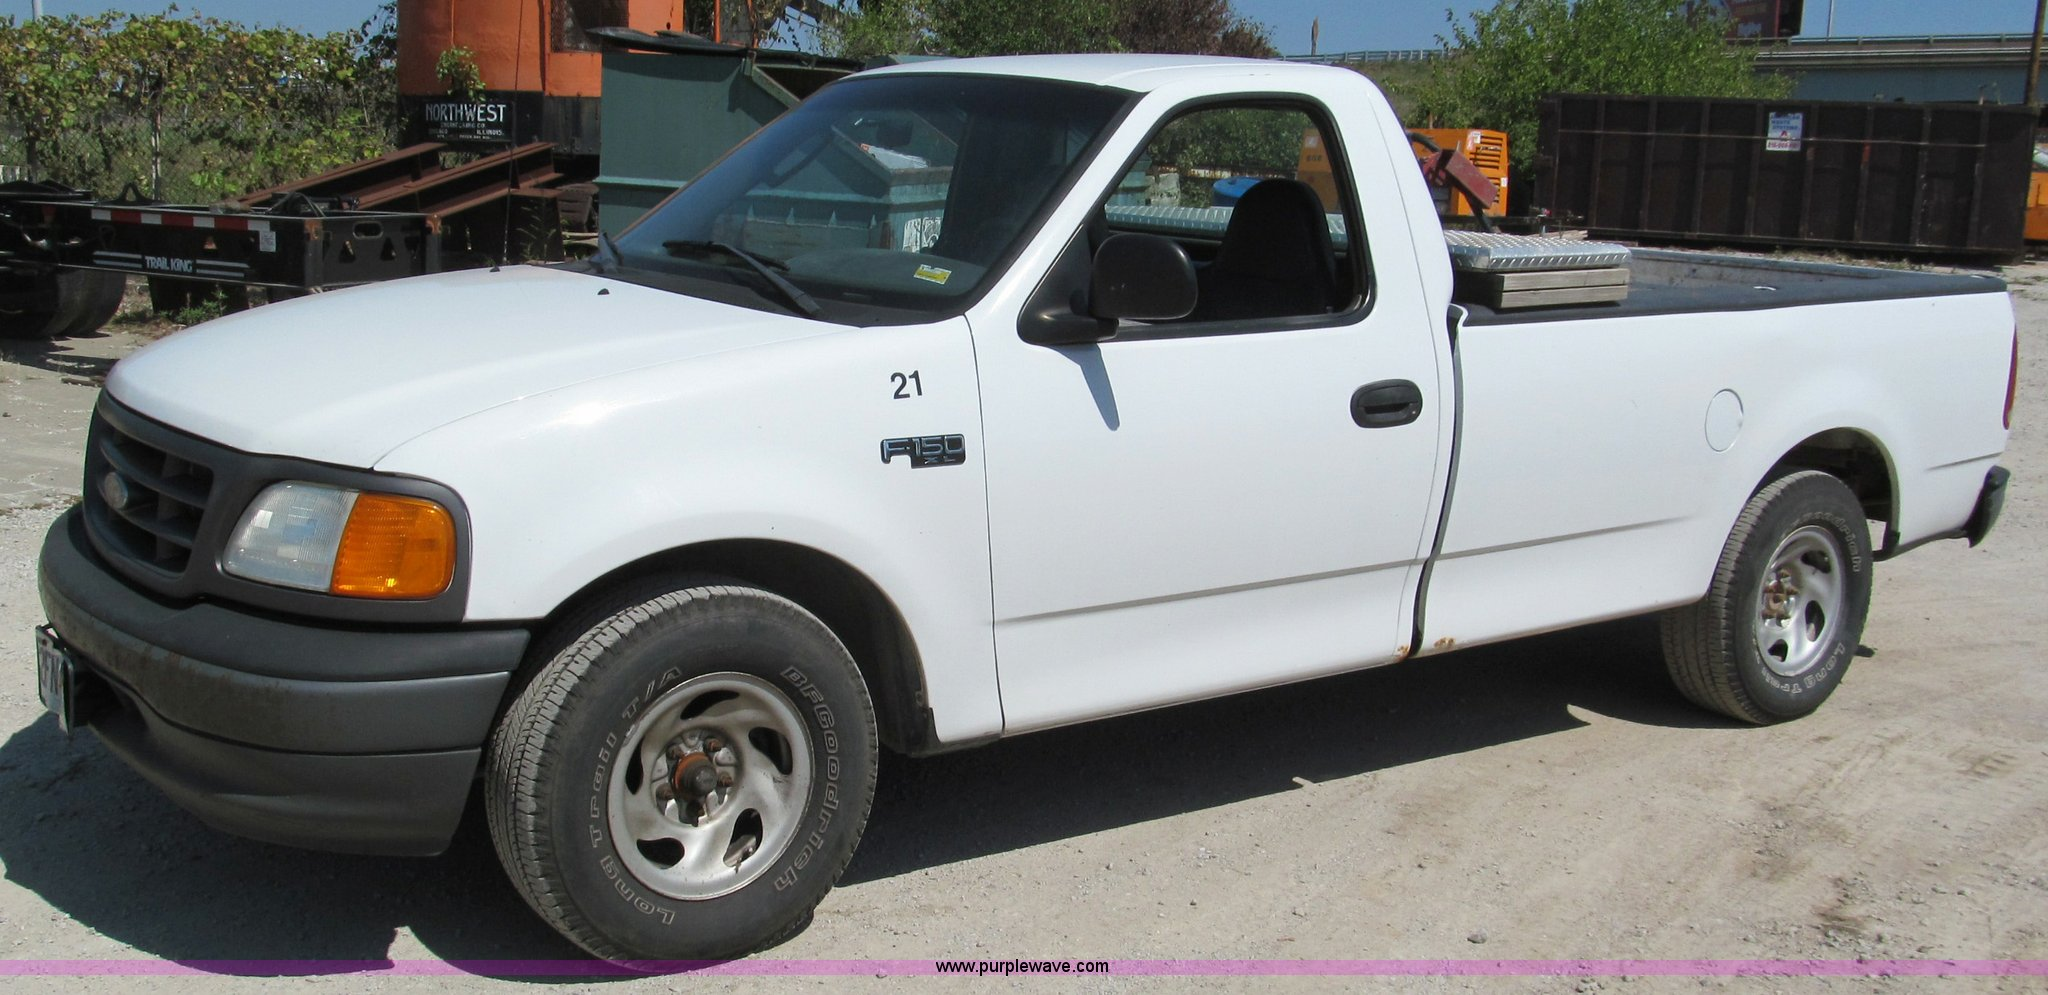 E2133 image for item E2133 2004 Ford F150 Heritage XL pickup truck